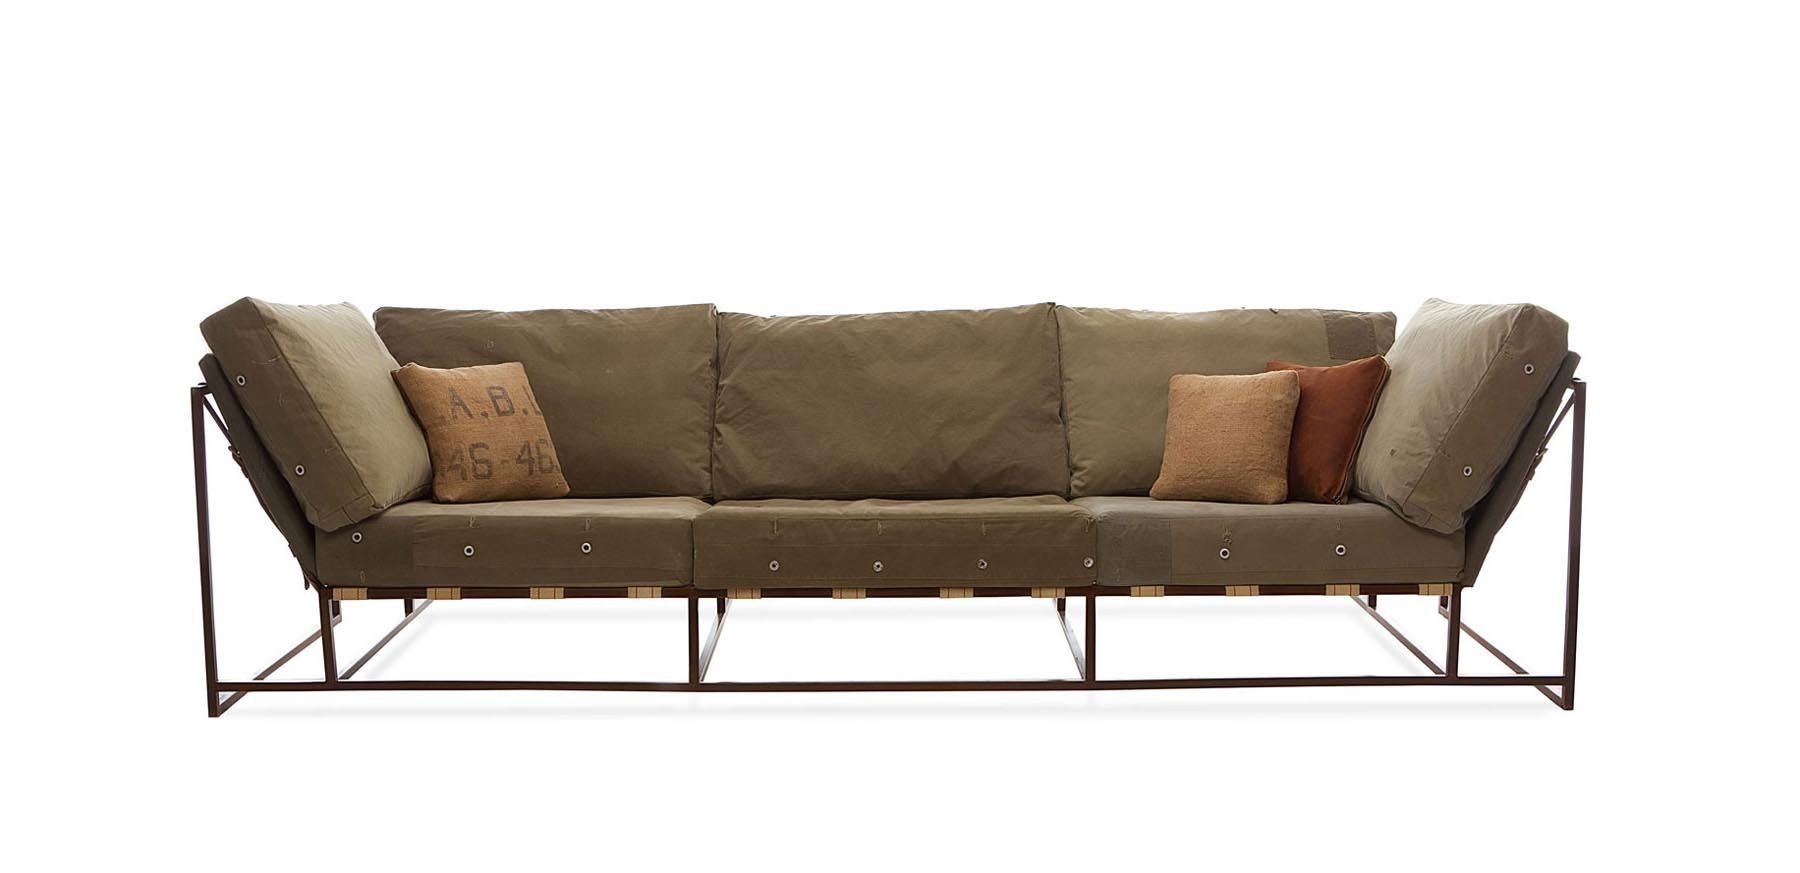 Steve Kenn Furniture Is Sourced And Made Locally In Los Angeles Using  (washed And Softened